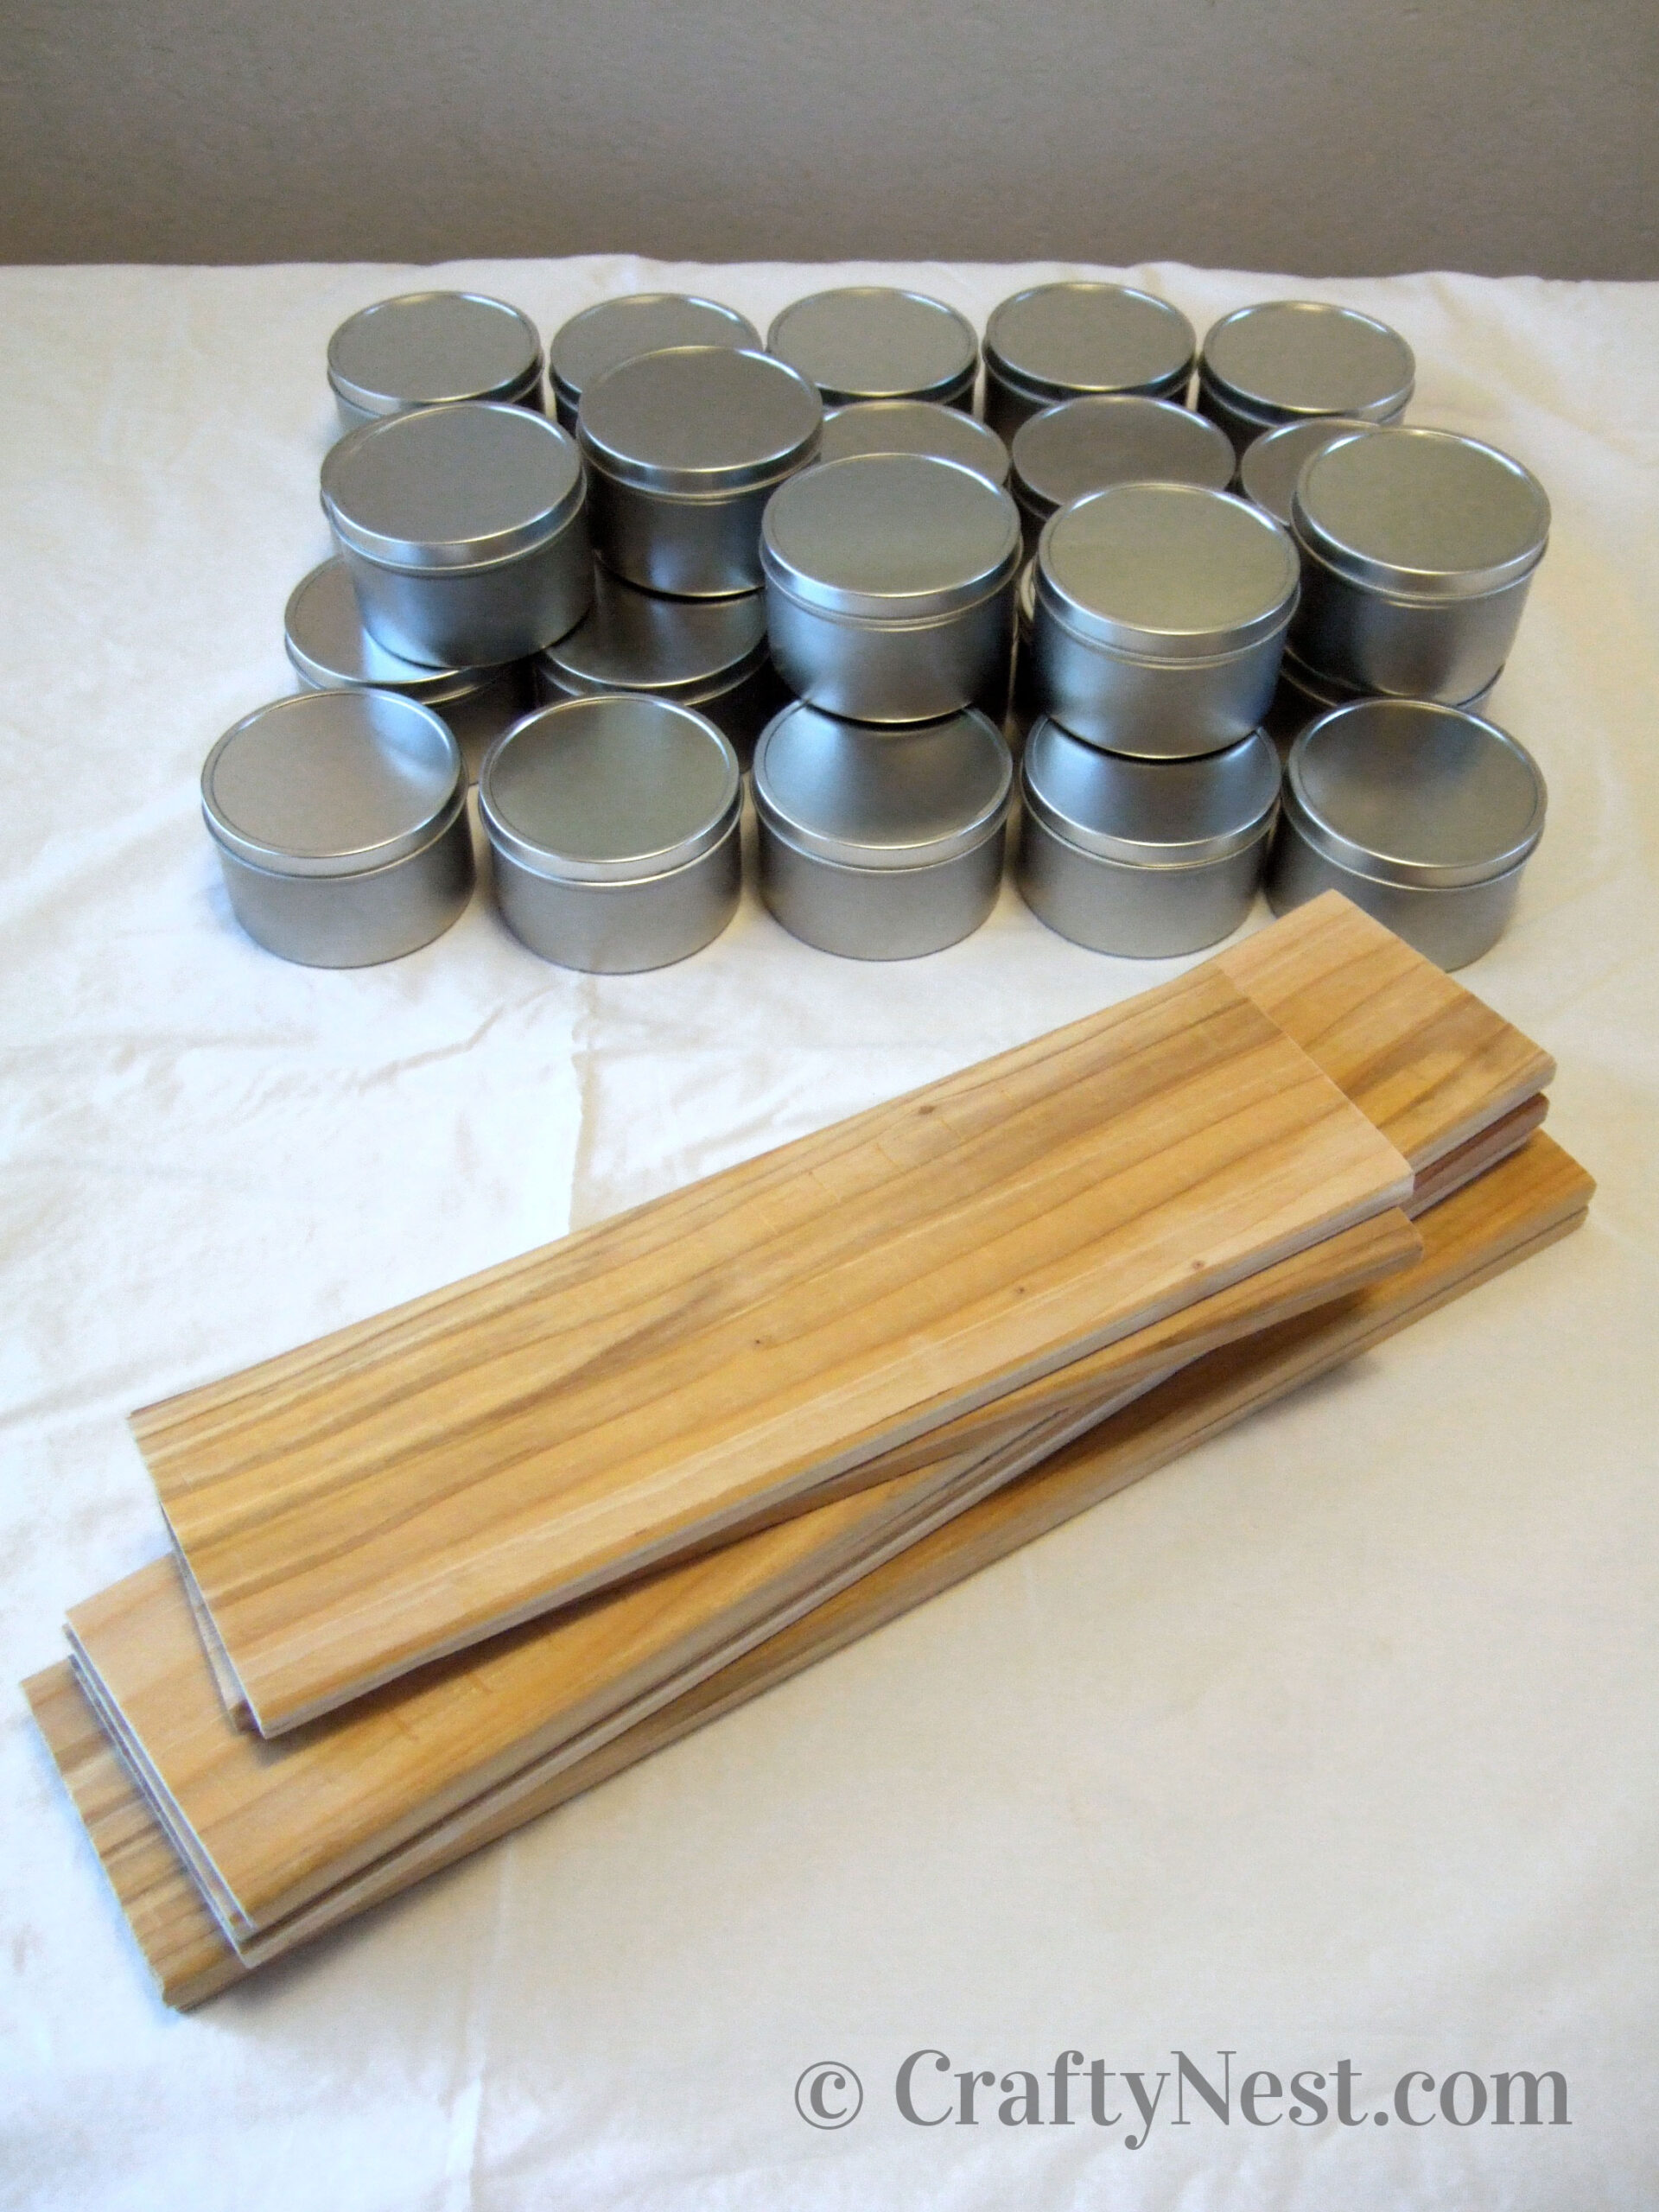 Cut pieces of wood and stack of tins, photo